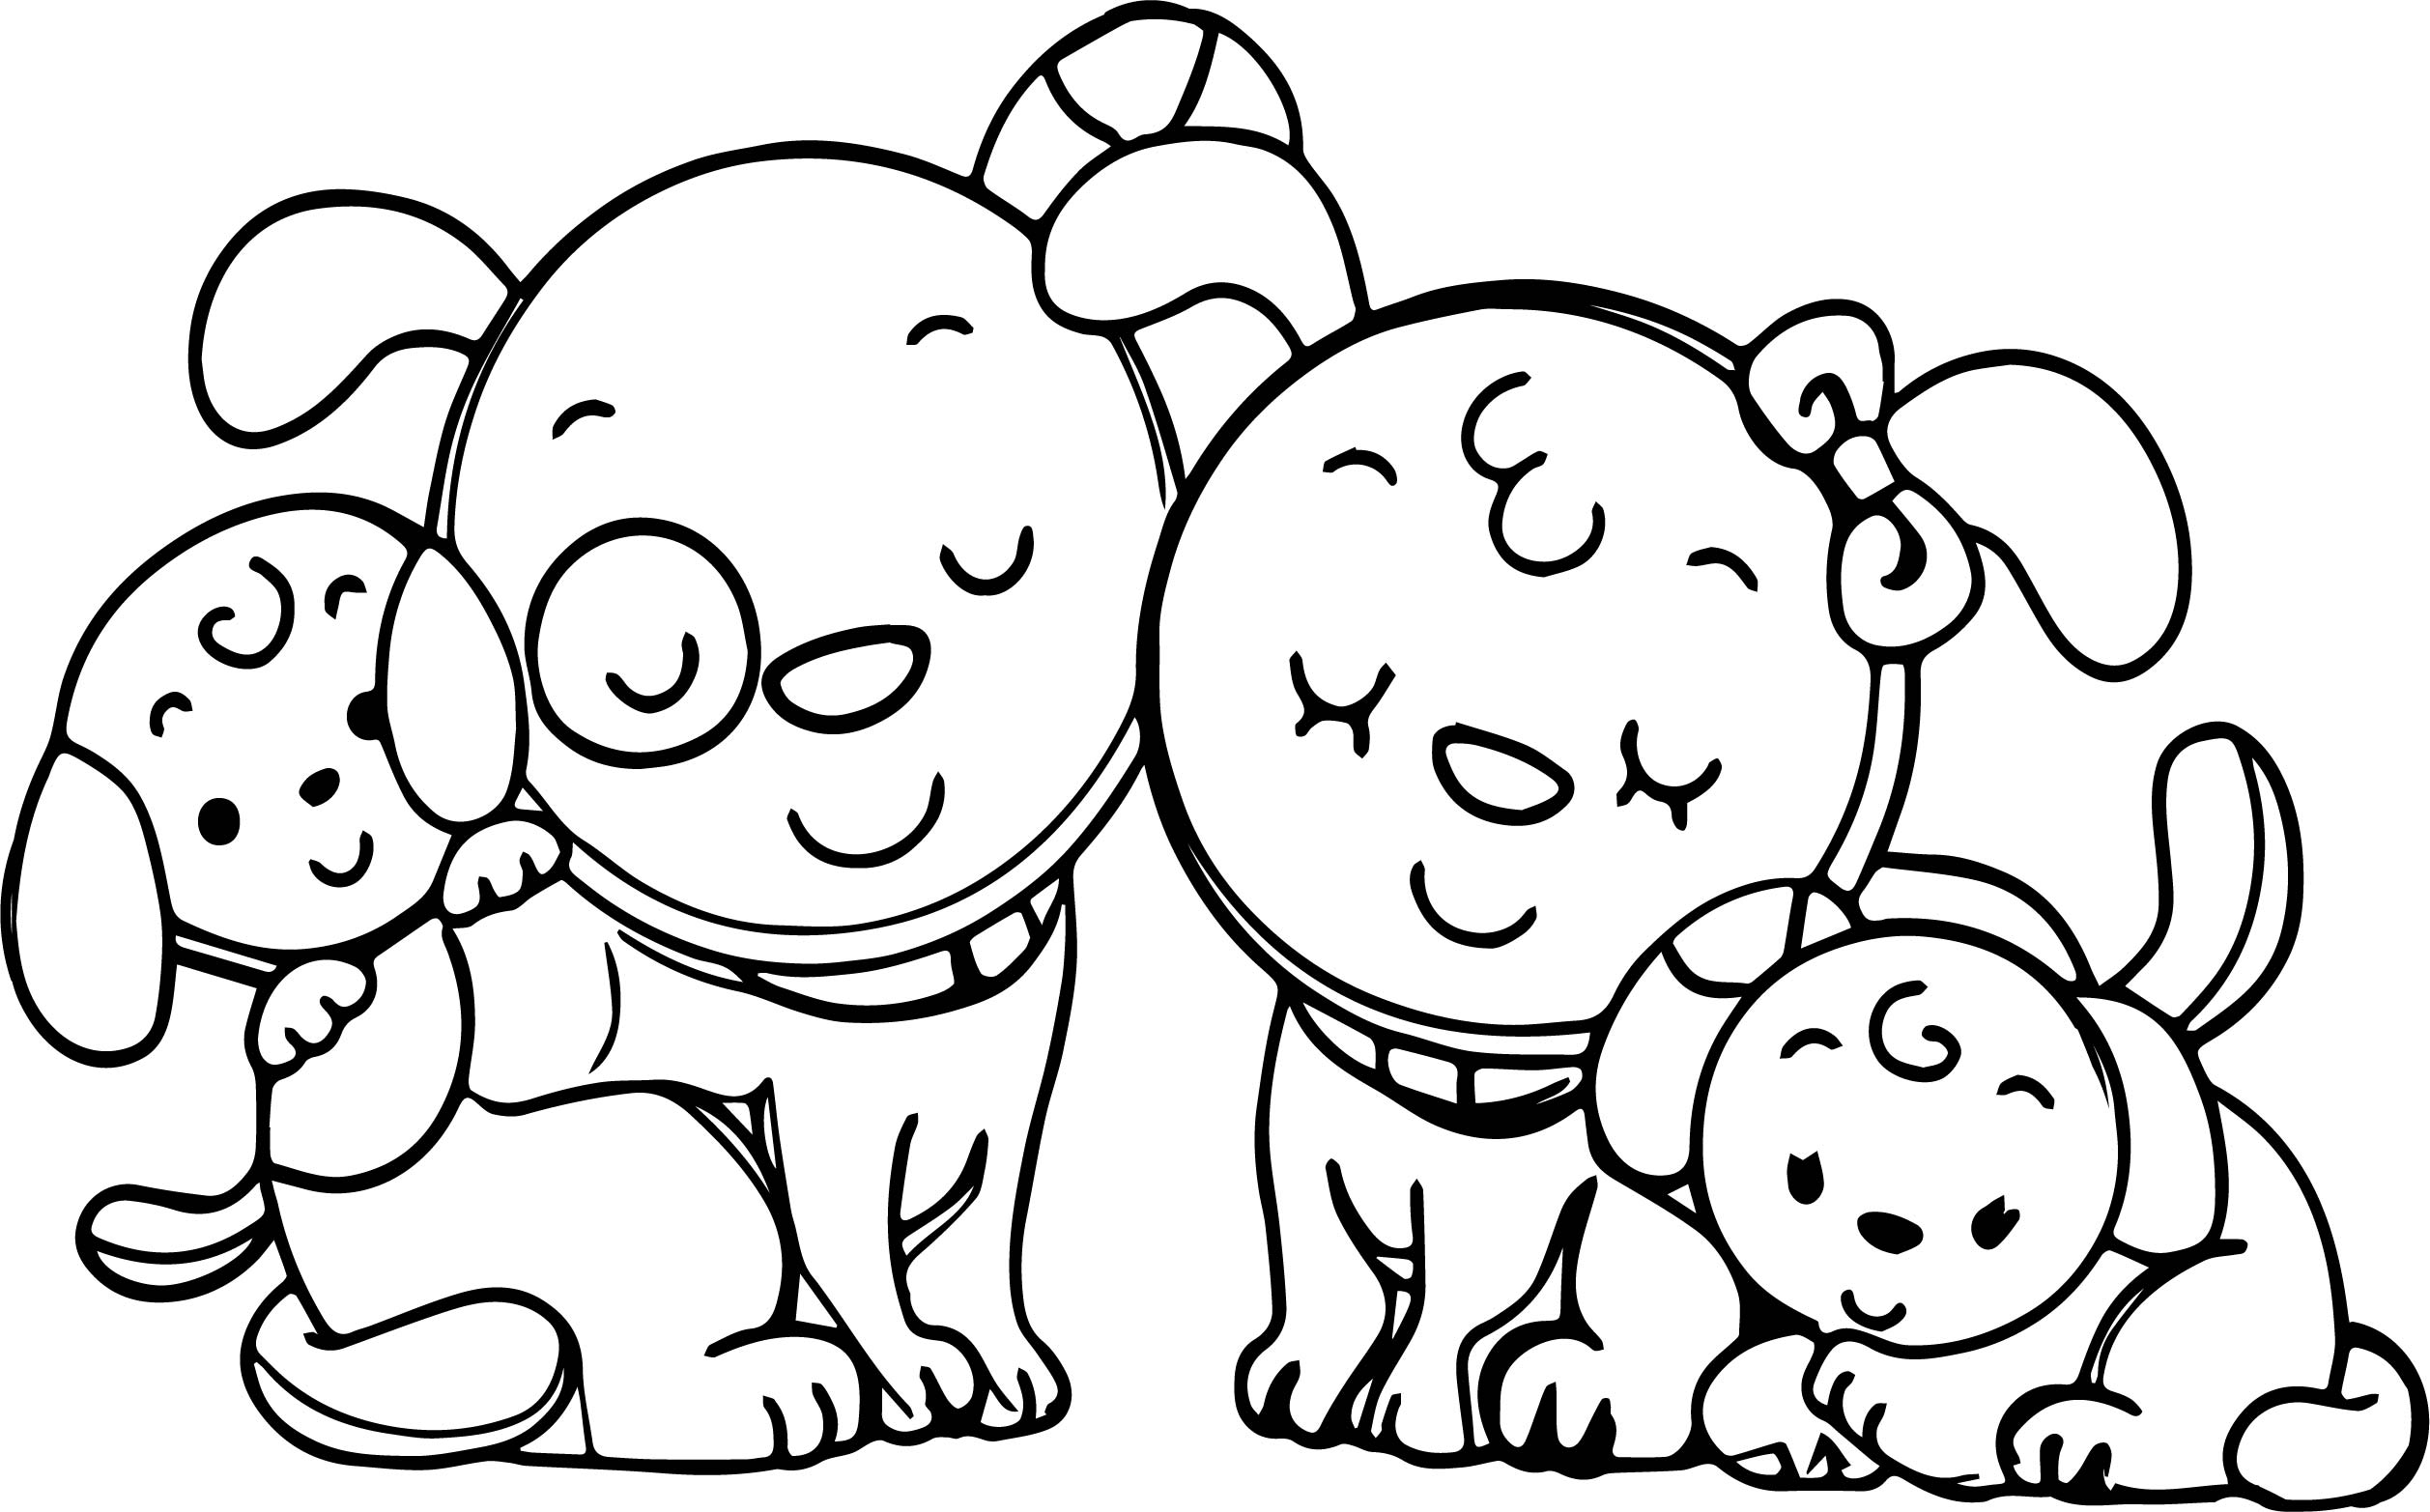 Animal Dog Family Family Coloring Page Wecoloringpage Family Coloring Page